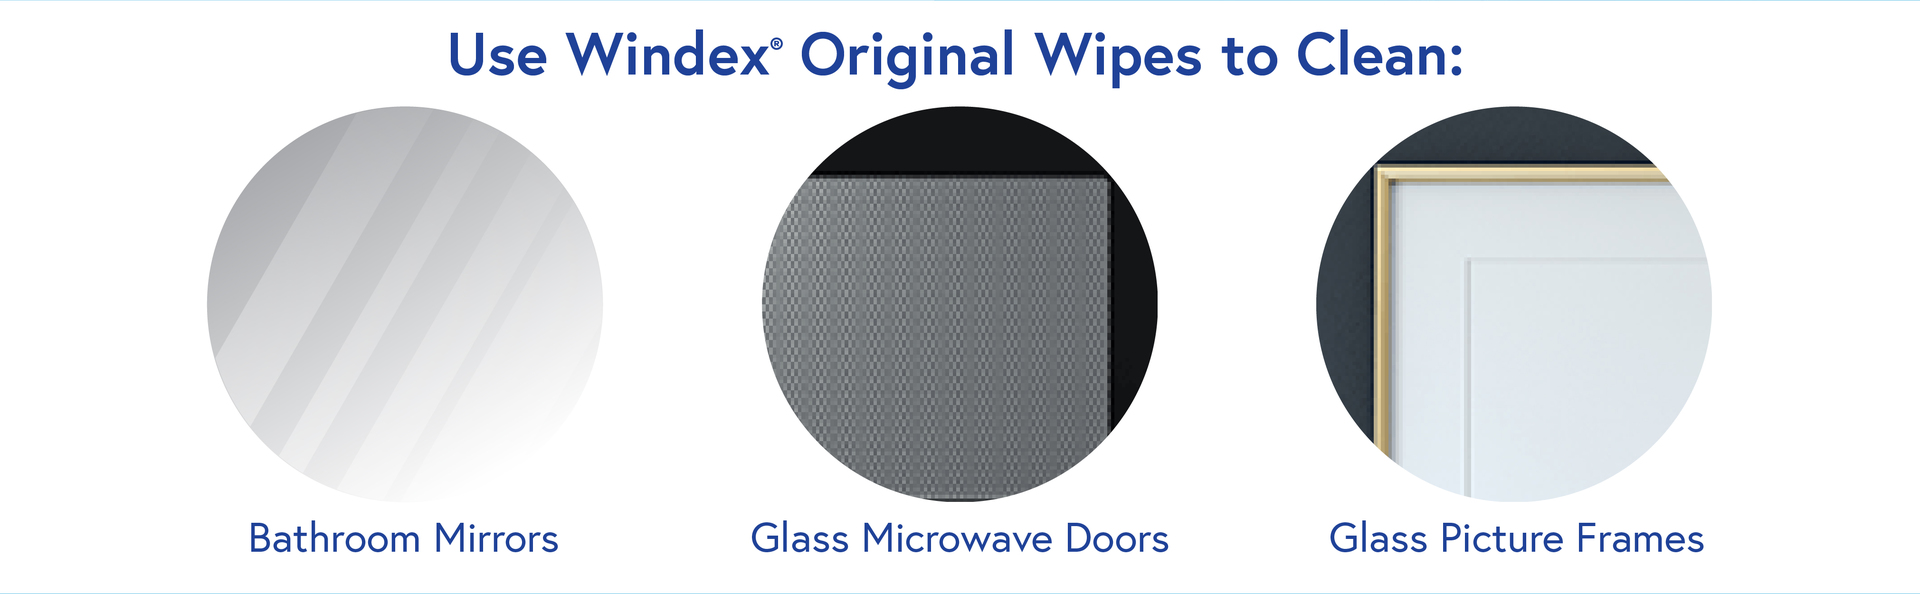 Use Windex Original Wipes to Clean: Bathroom Mirrors, Glass Microwave Doors, Glass Picture Frames